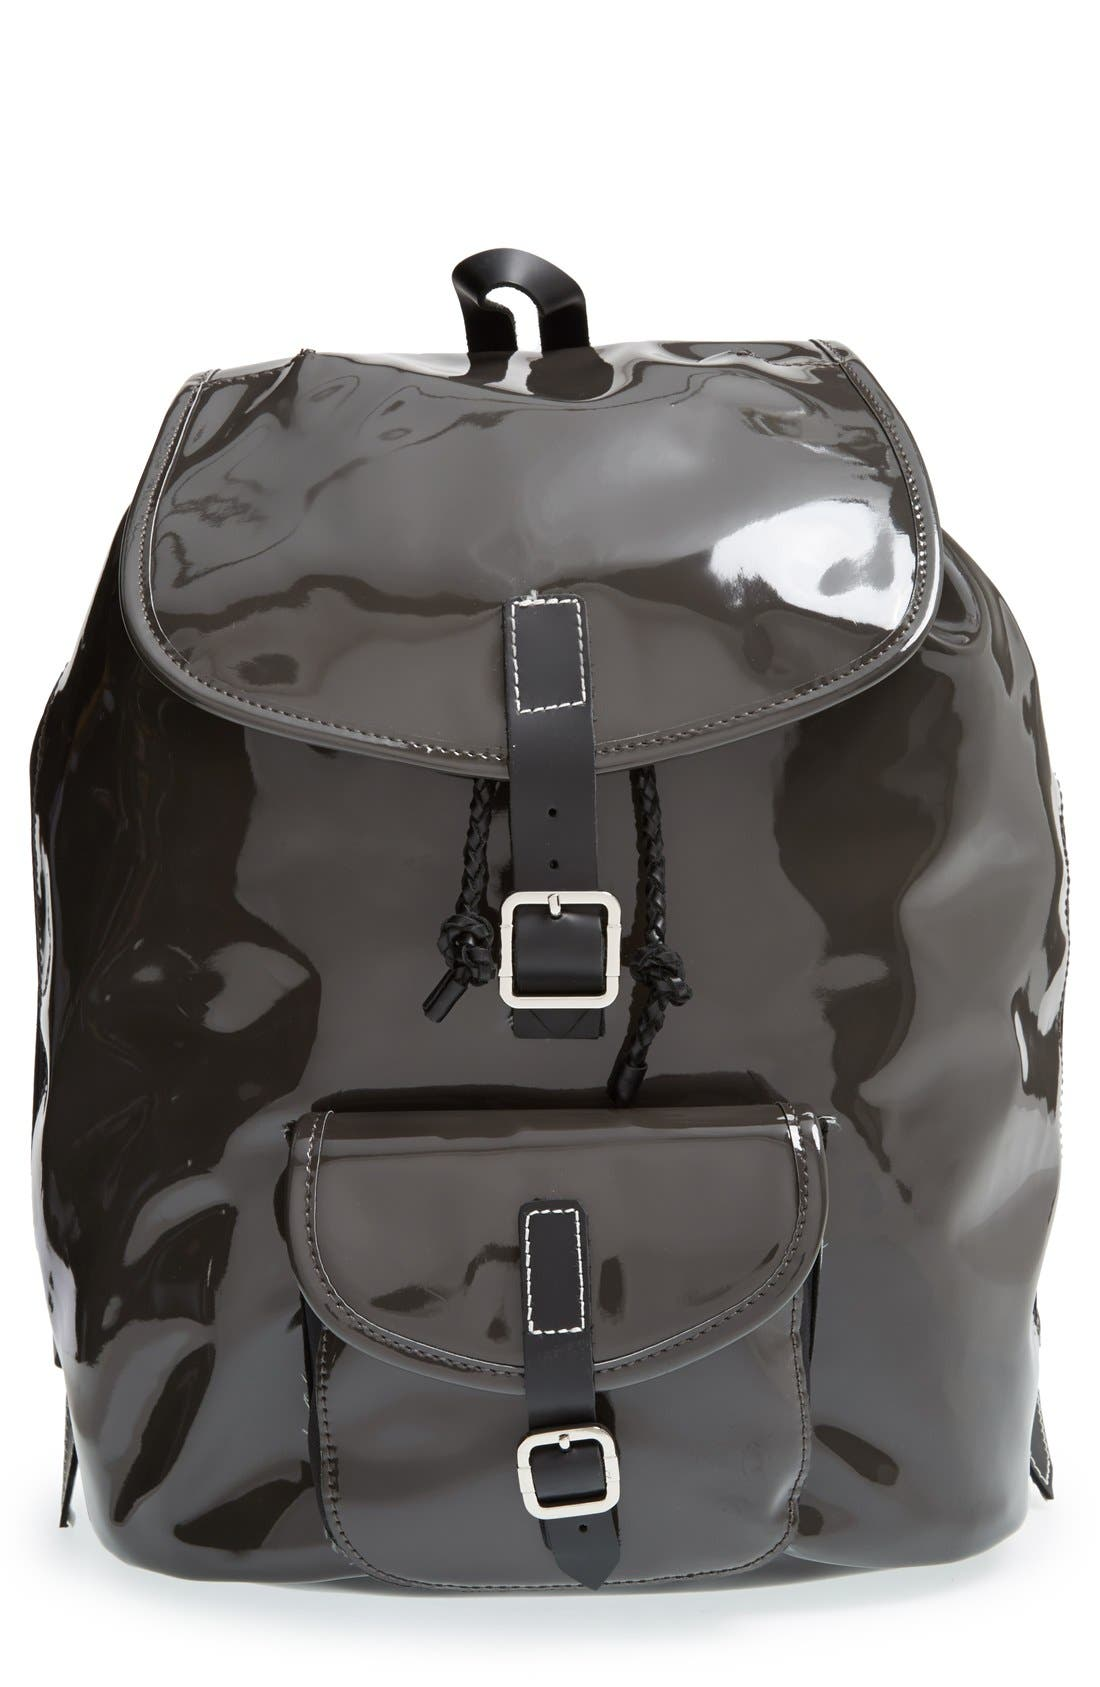 Main Image - Harper Ave 'Philip' Neoprene & Faux Patent Leather Backpack